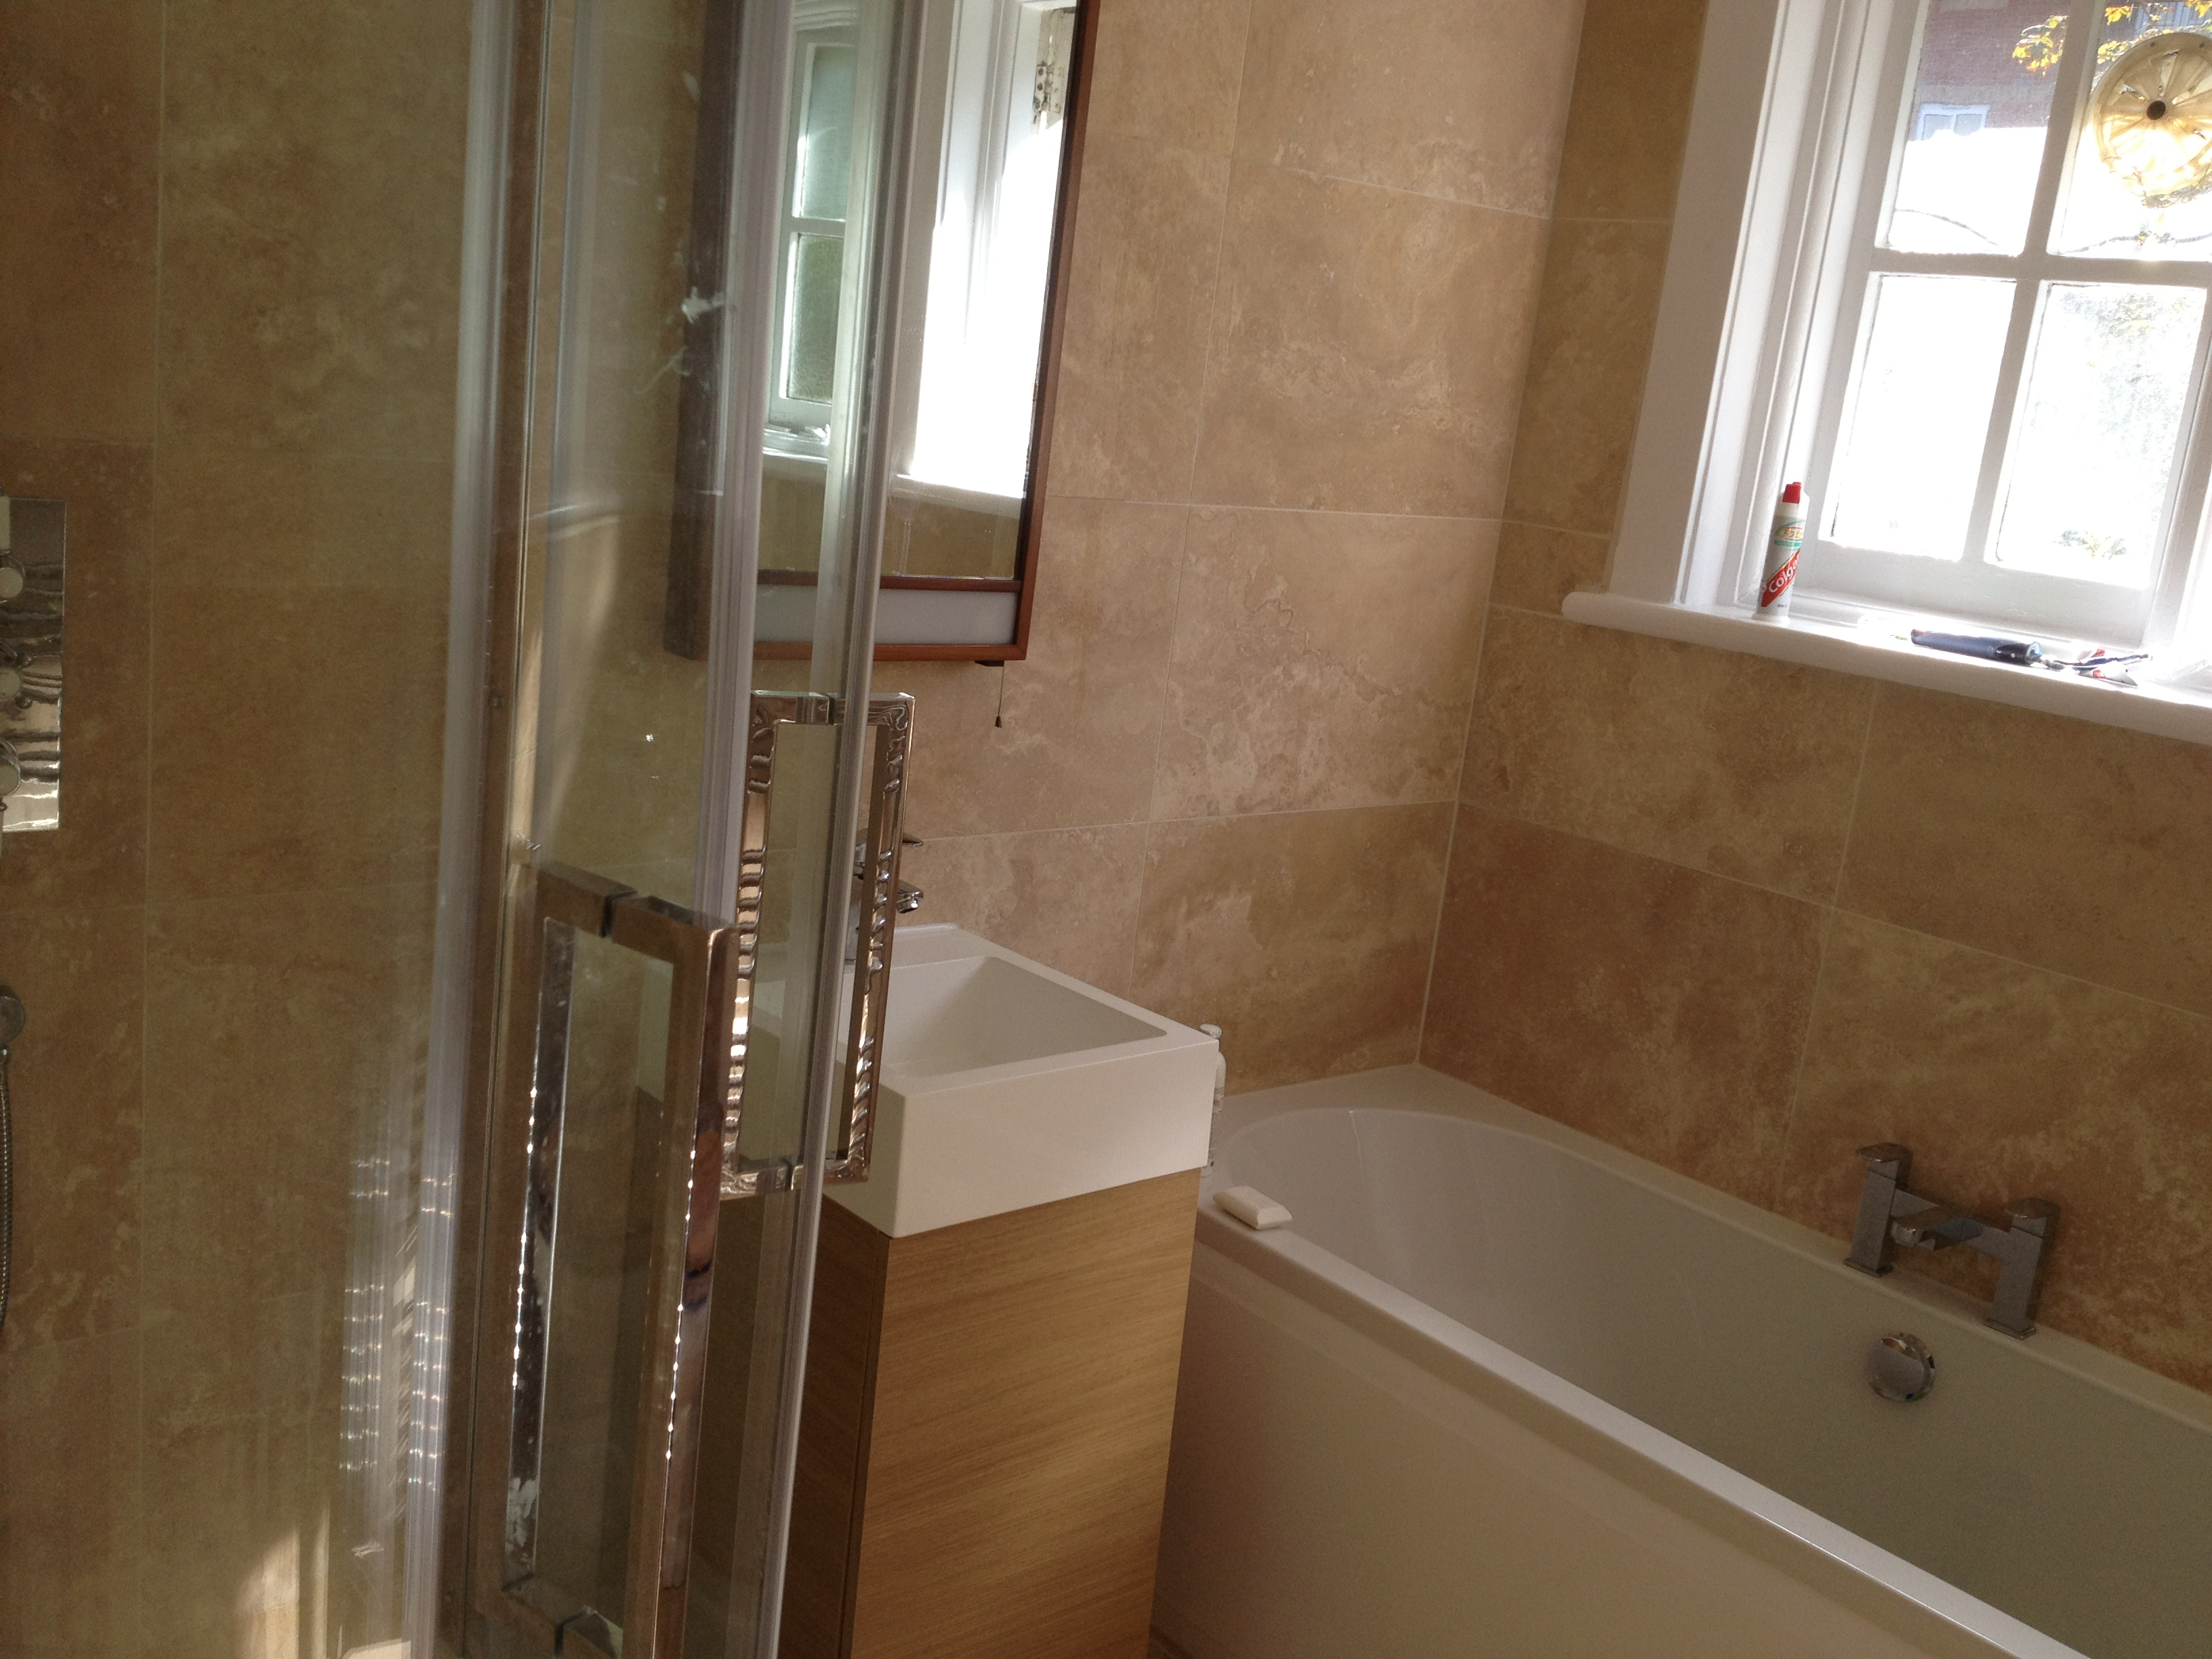 Bathroom refurbishment, London